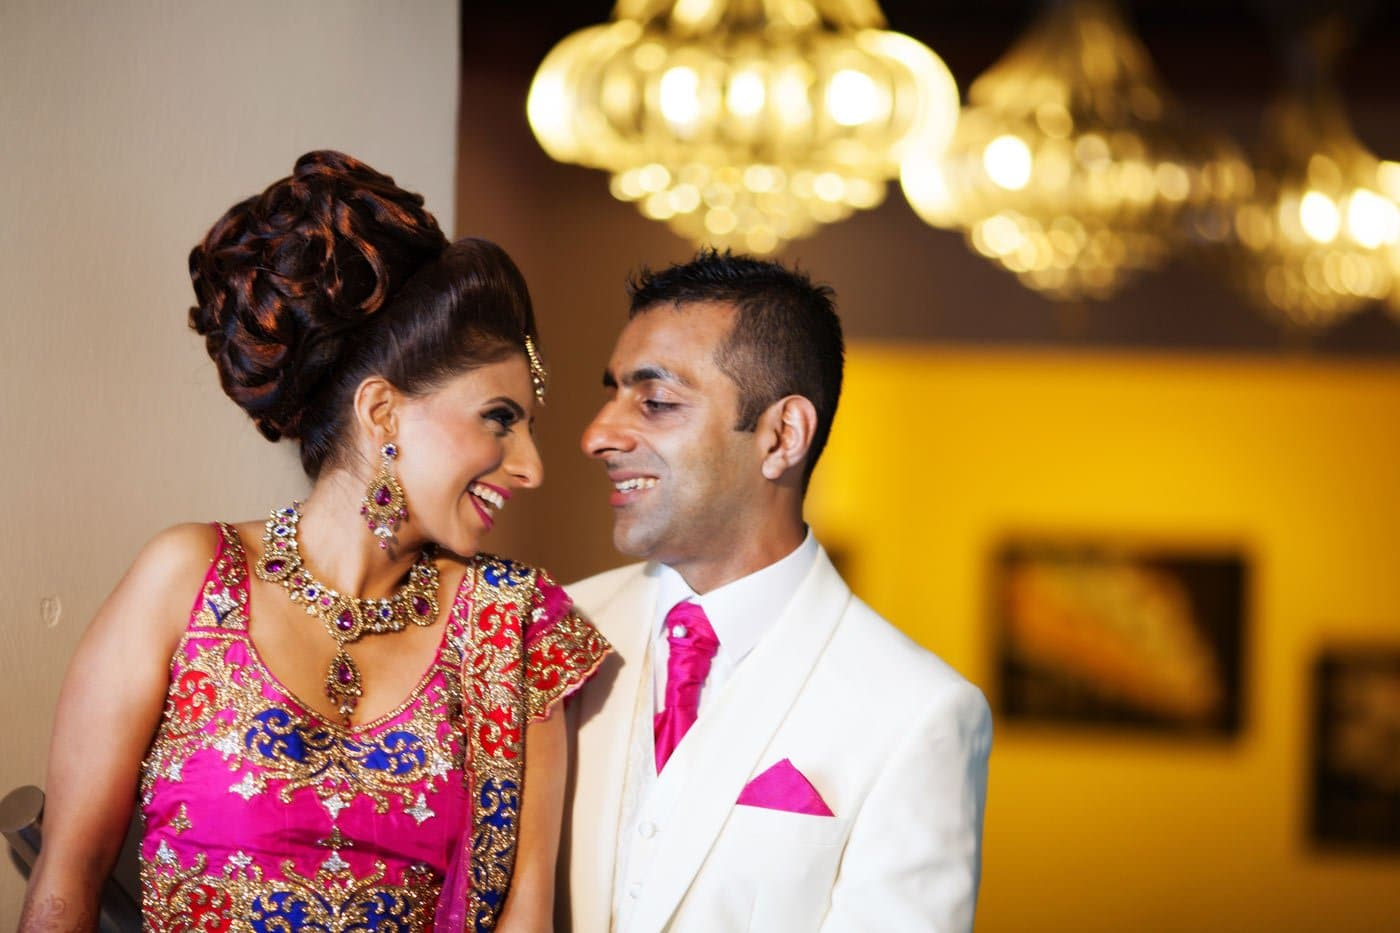 Wedding Photography and Video at Athena Banqueting Suite, Leicester // Pam & Ravi